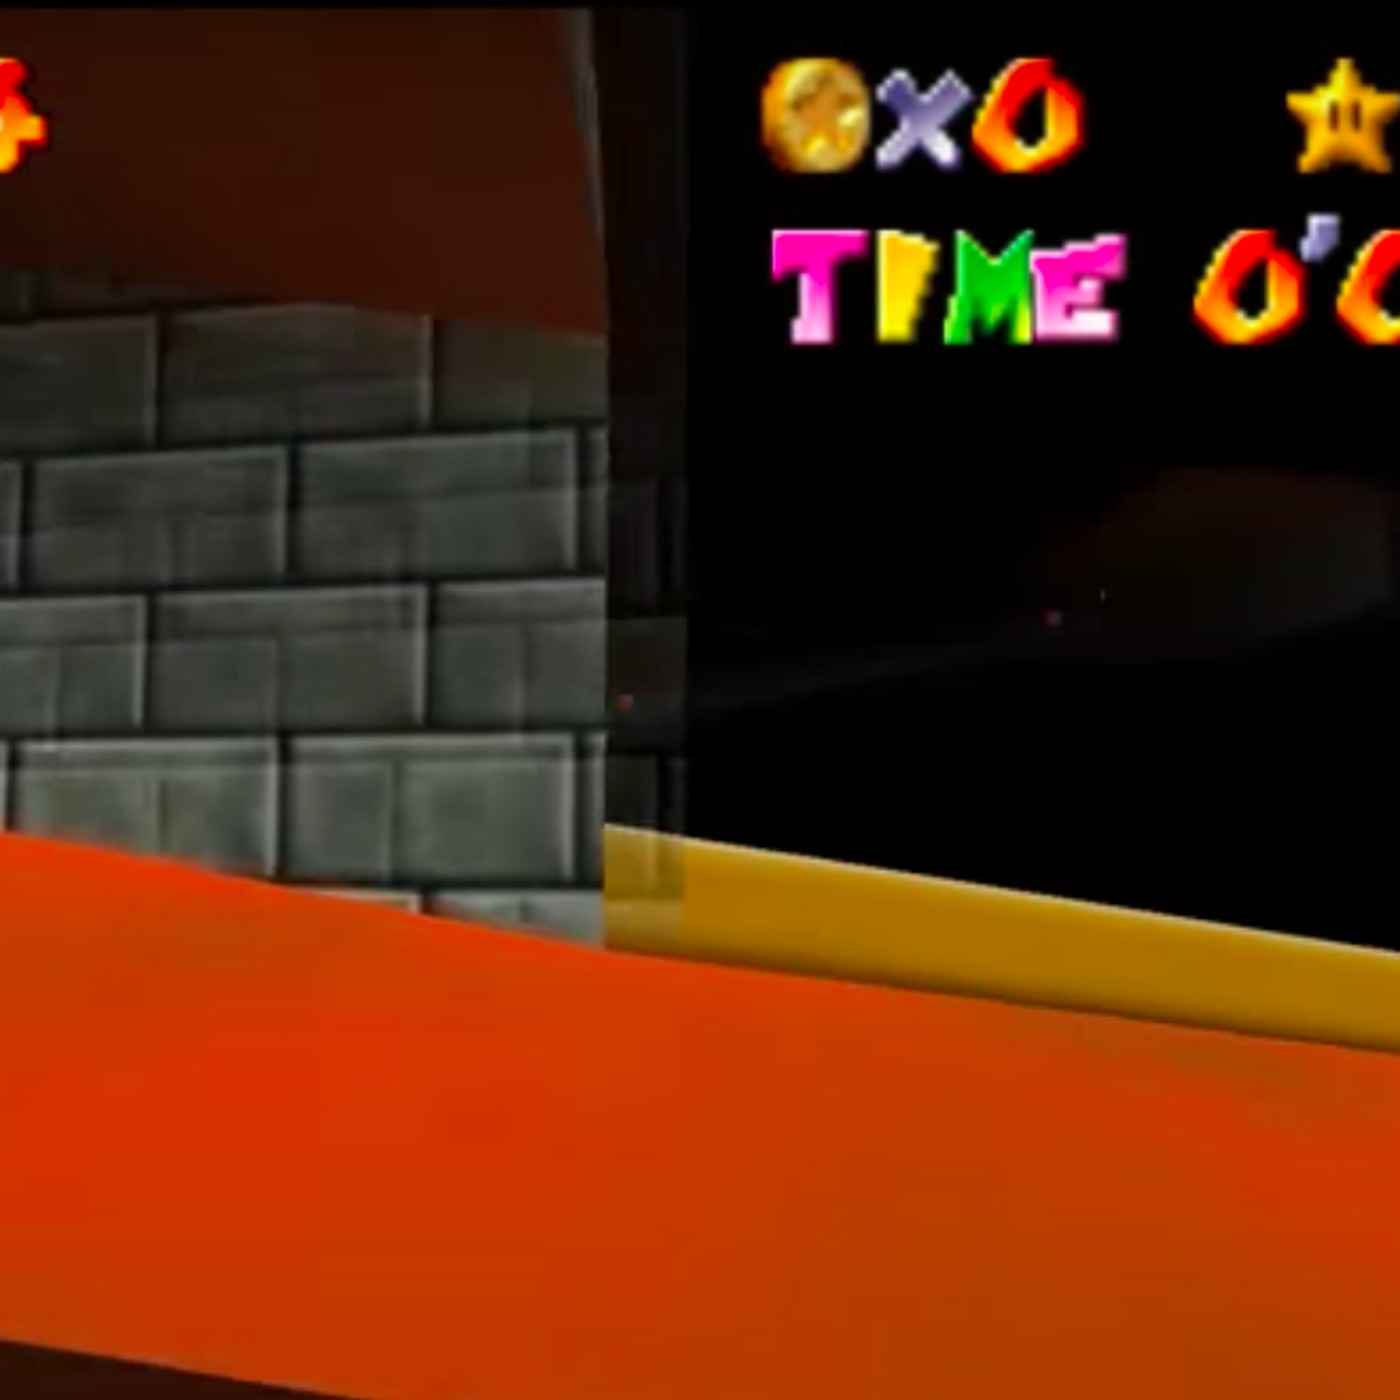 Super Mario 64 hack gives Mario a dizzying first-person perspective